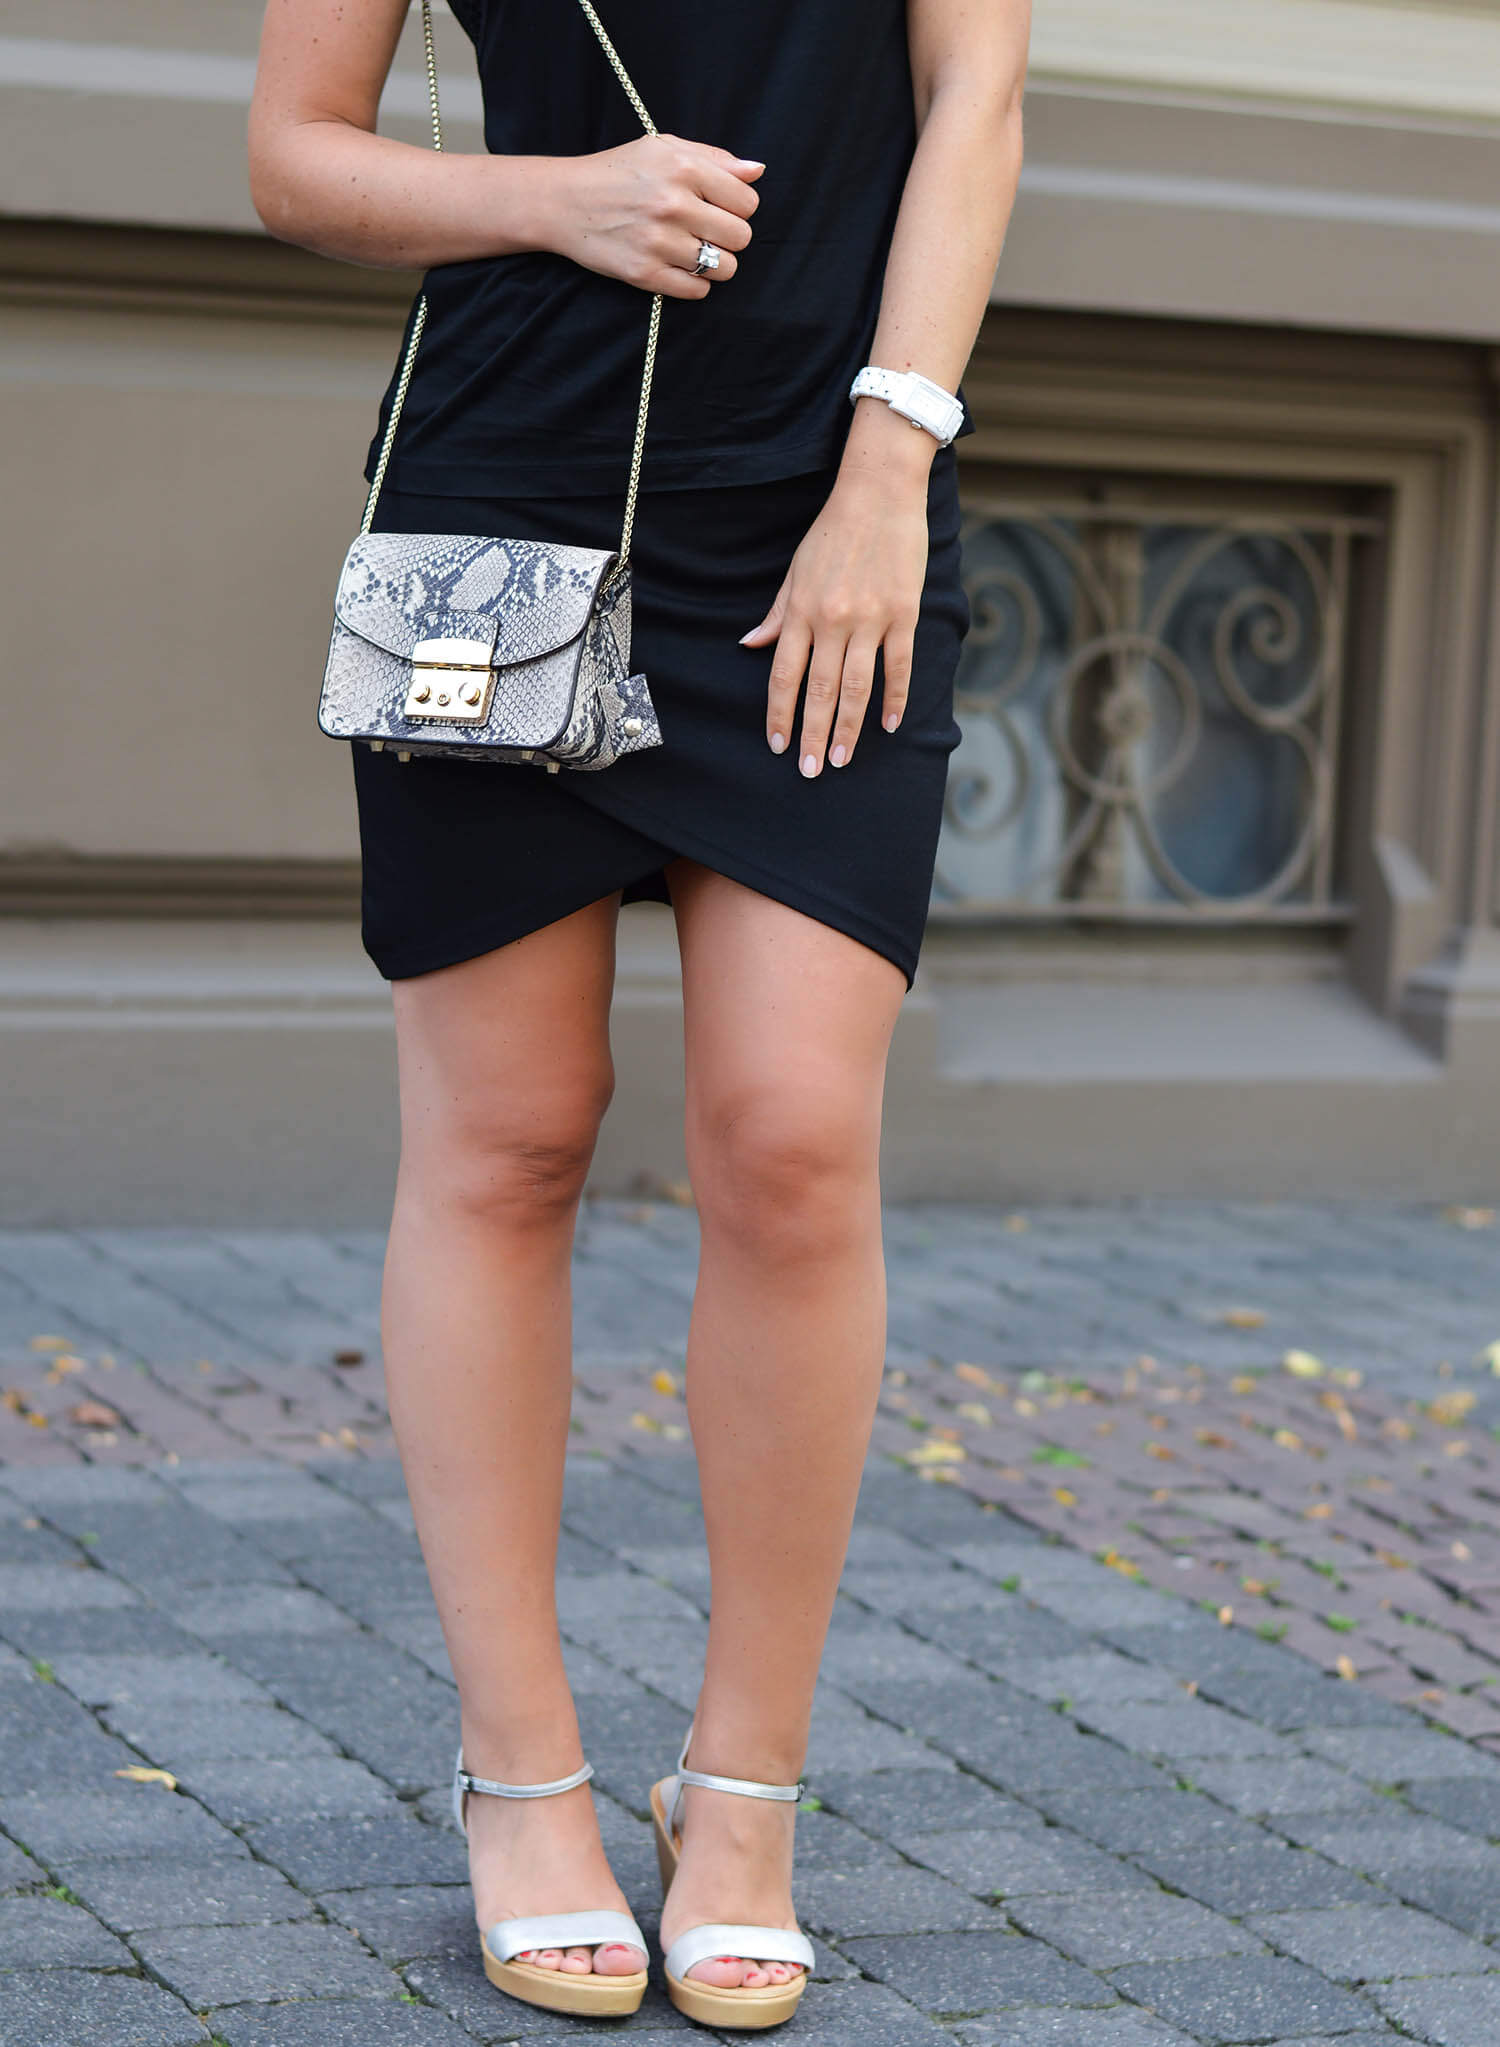 Kationette-Fashionblog-nrw-streetstyle-Outfit-Allblack-Everything-Wrapped-mini-Skirt-Lace-Top-chanel-furla-unisa